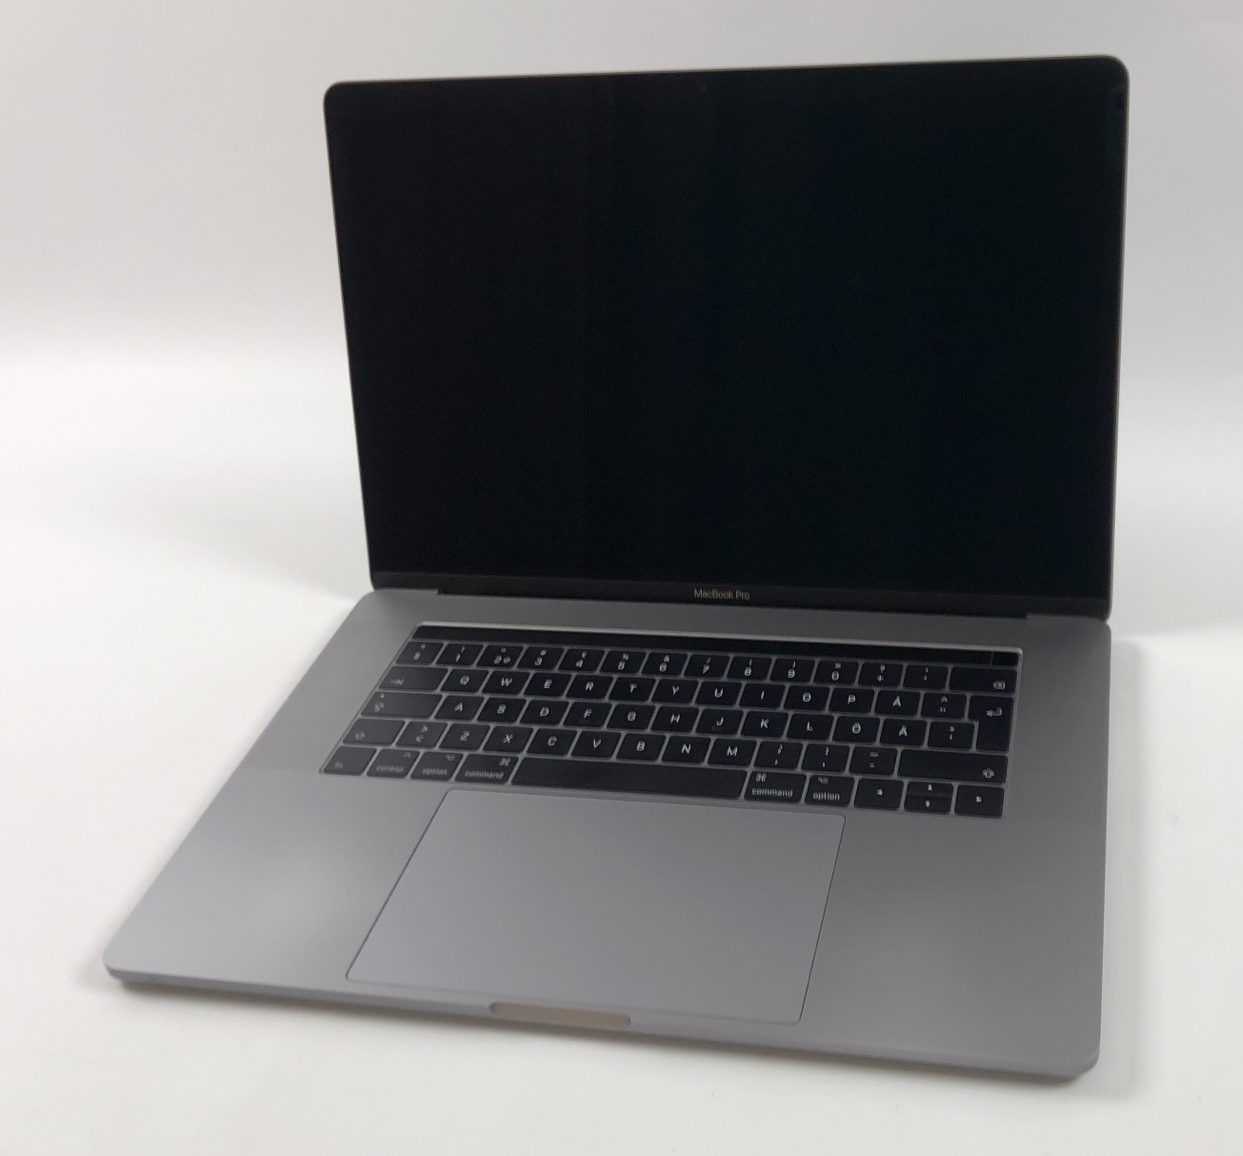 "MacBook Pro 15"" Touch Bar Late 2016 (Intel Quad-Core i7 2.7 GHz 16 GB RAM 512 GB SSD), Space Gray, Intel Quad-Core i7 2.7 GHz, 16 GB RAM, 512 GB SSD, imagen 1"